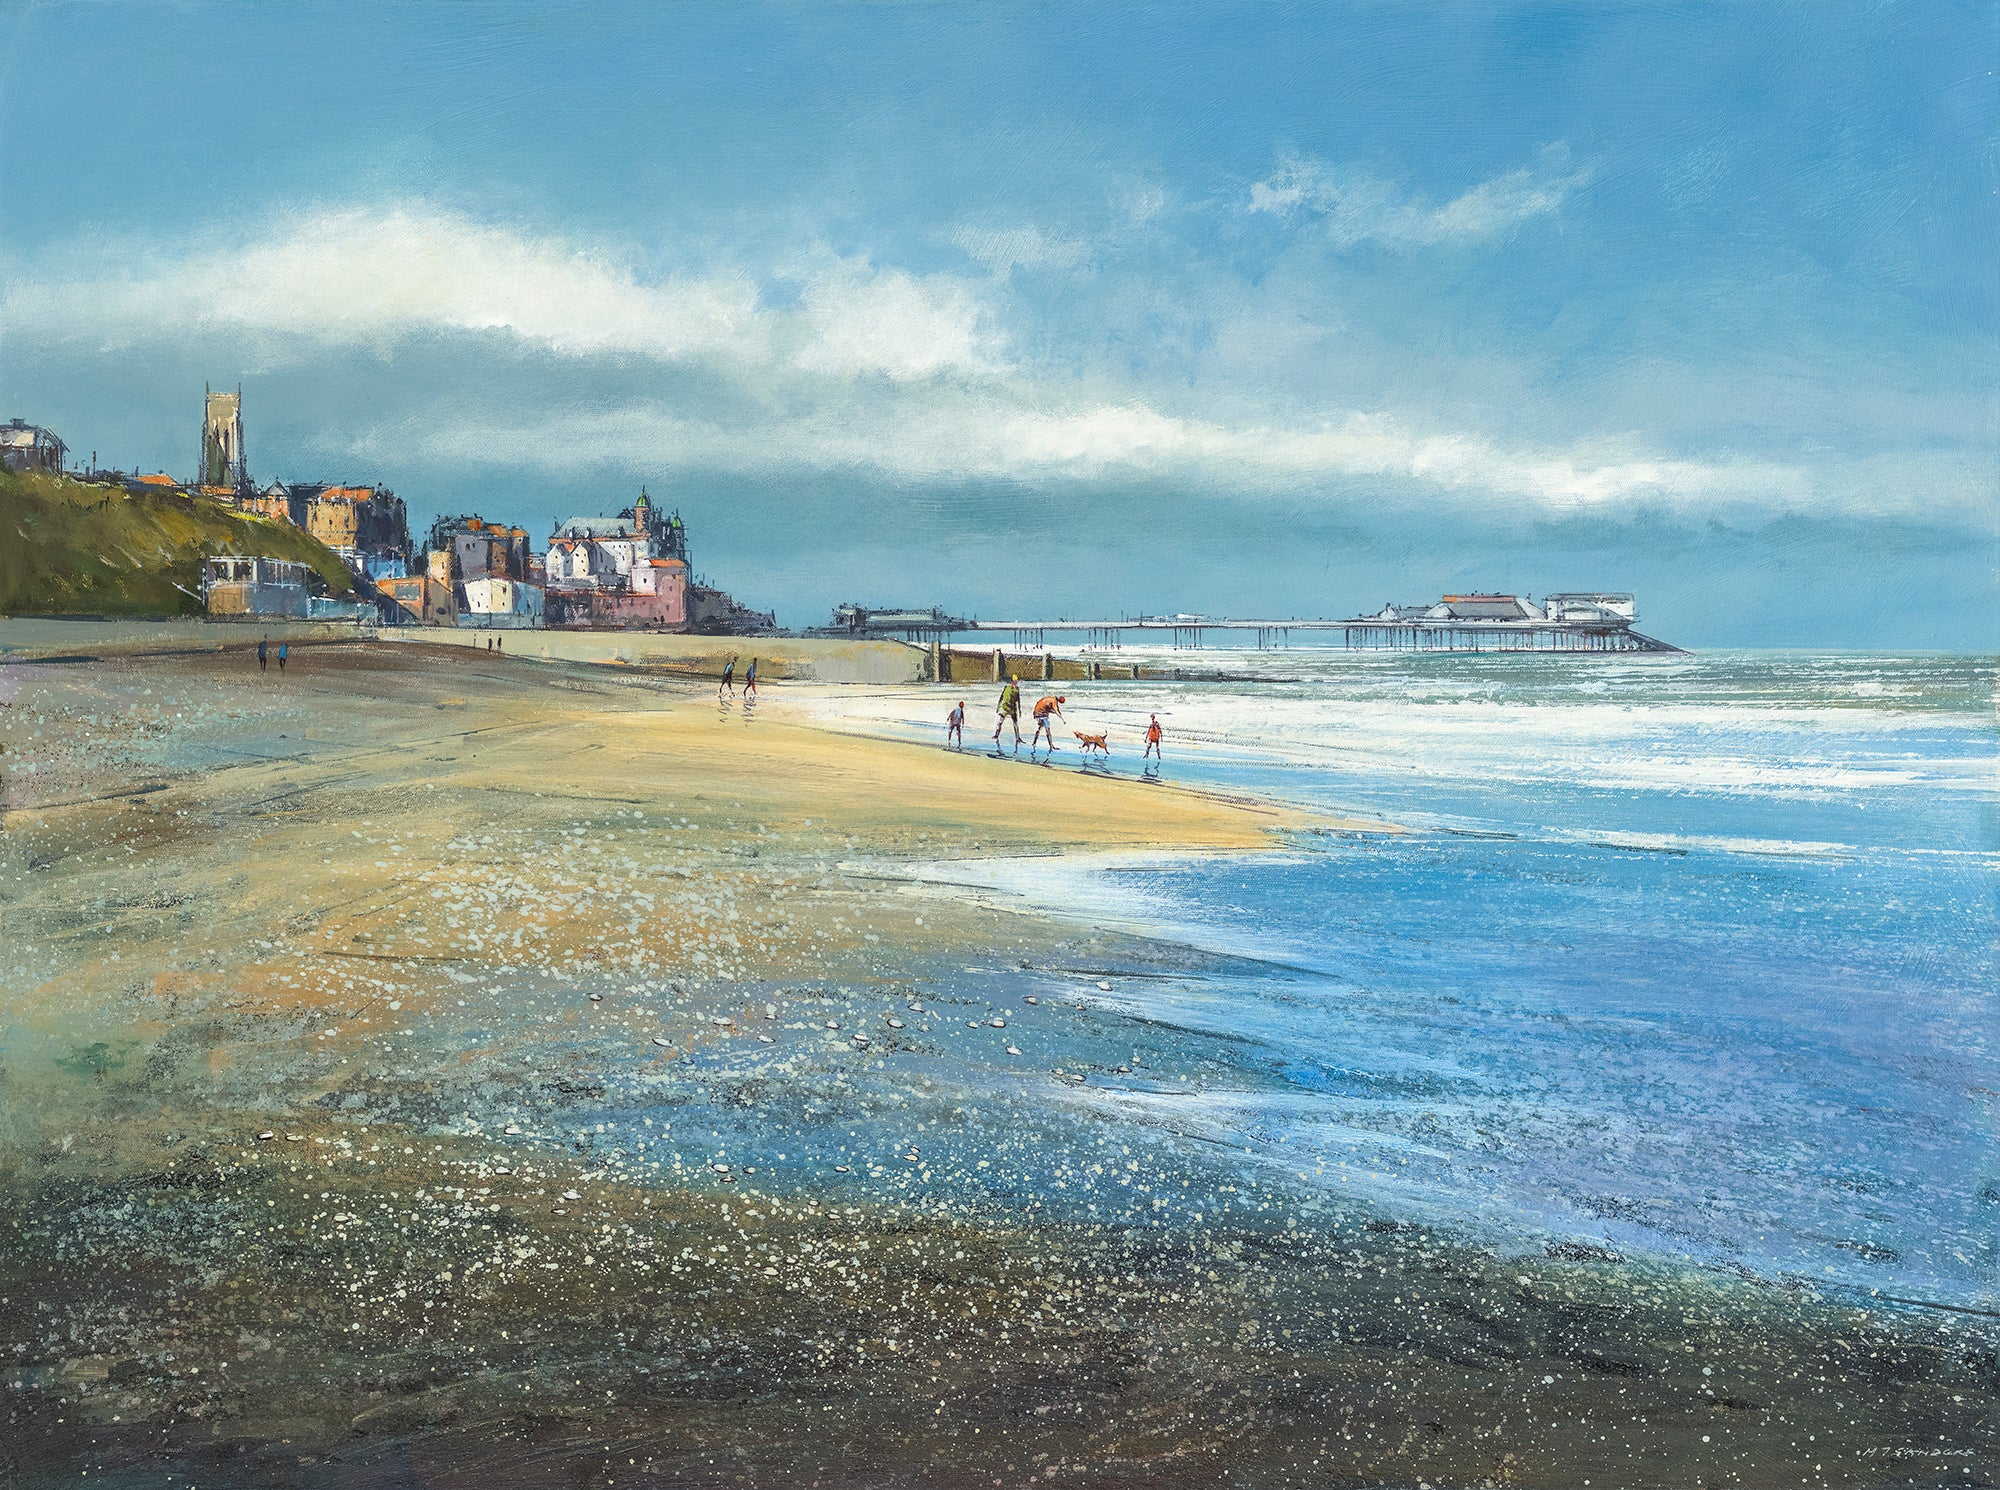 Michael Sanders | A Day at the Beach, Cromer | Limited Edition Print | Free Shipping